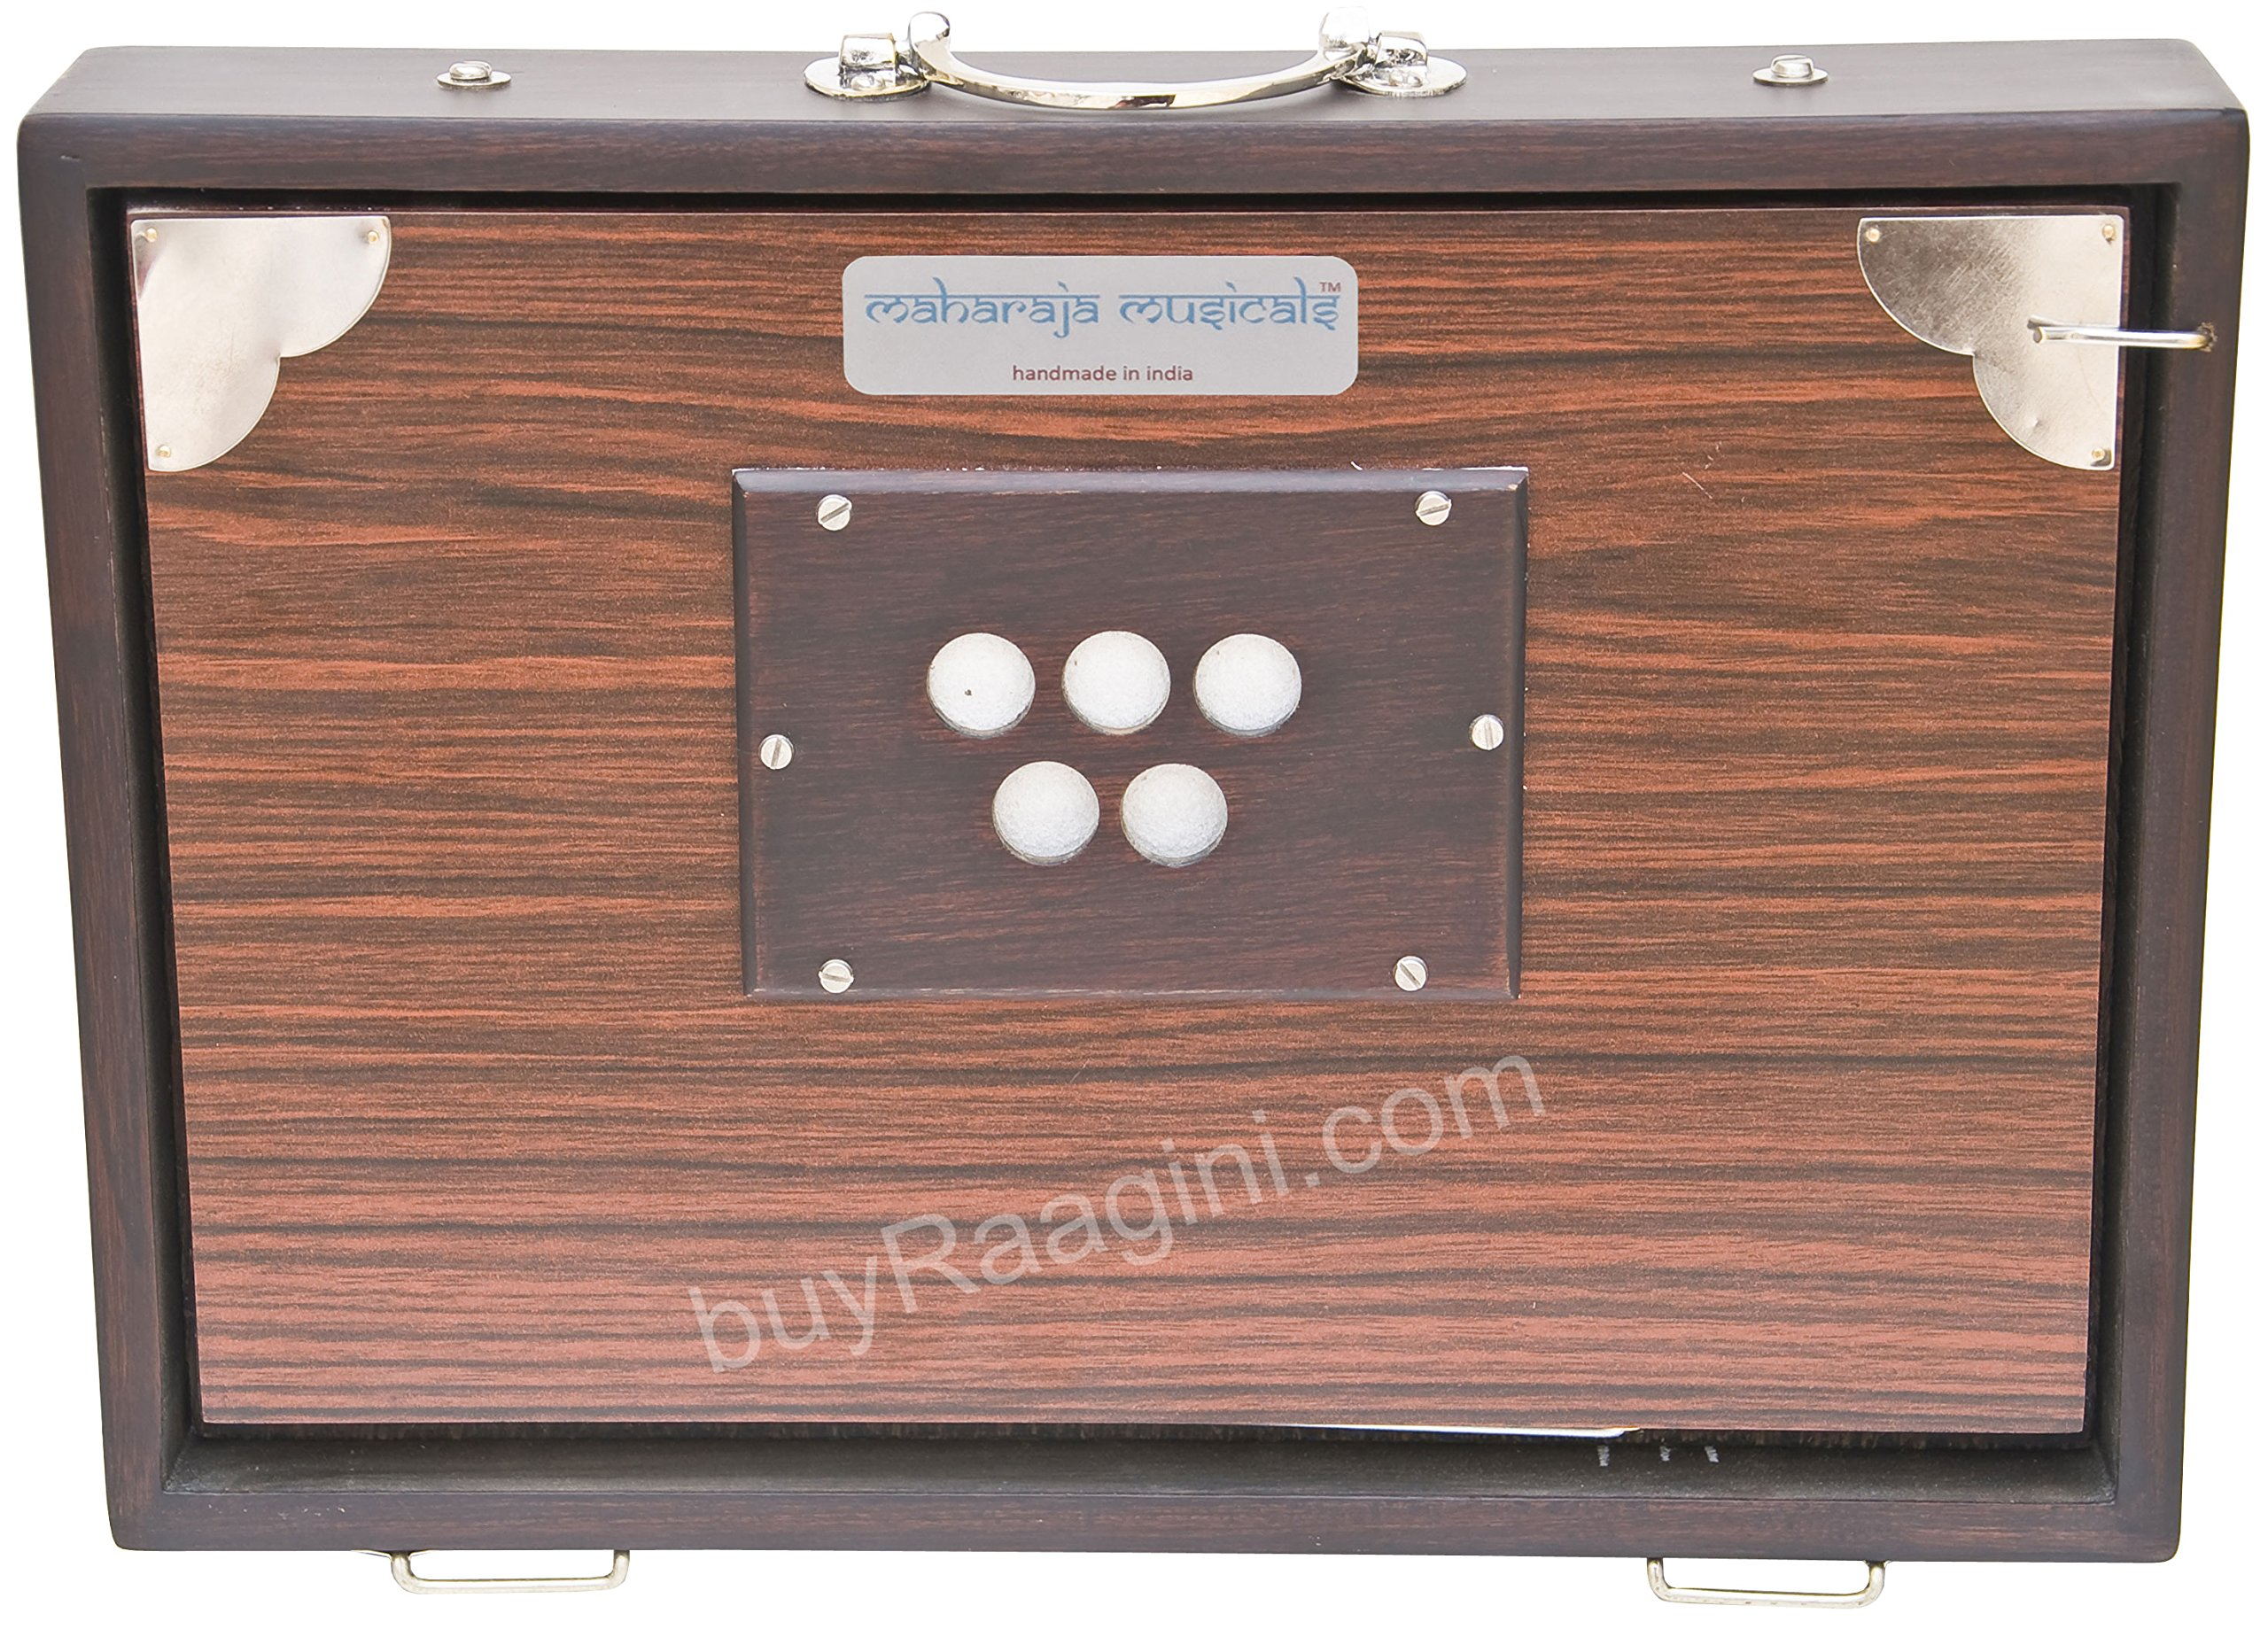 Shruti Box - Maharaja Musicals Shruti Box, Small, 13 x 9.5 x 3 Inches, With Bag, Rose Wood Color, 13 Notes, Portable, Sweet/Warm Sound, Long Sustain, Shruthi Box, Sur Peti (PDI-BAF) by Maharaja Musicals (Image #2)